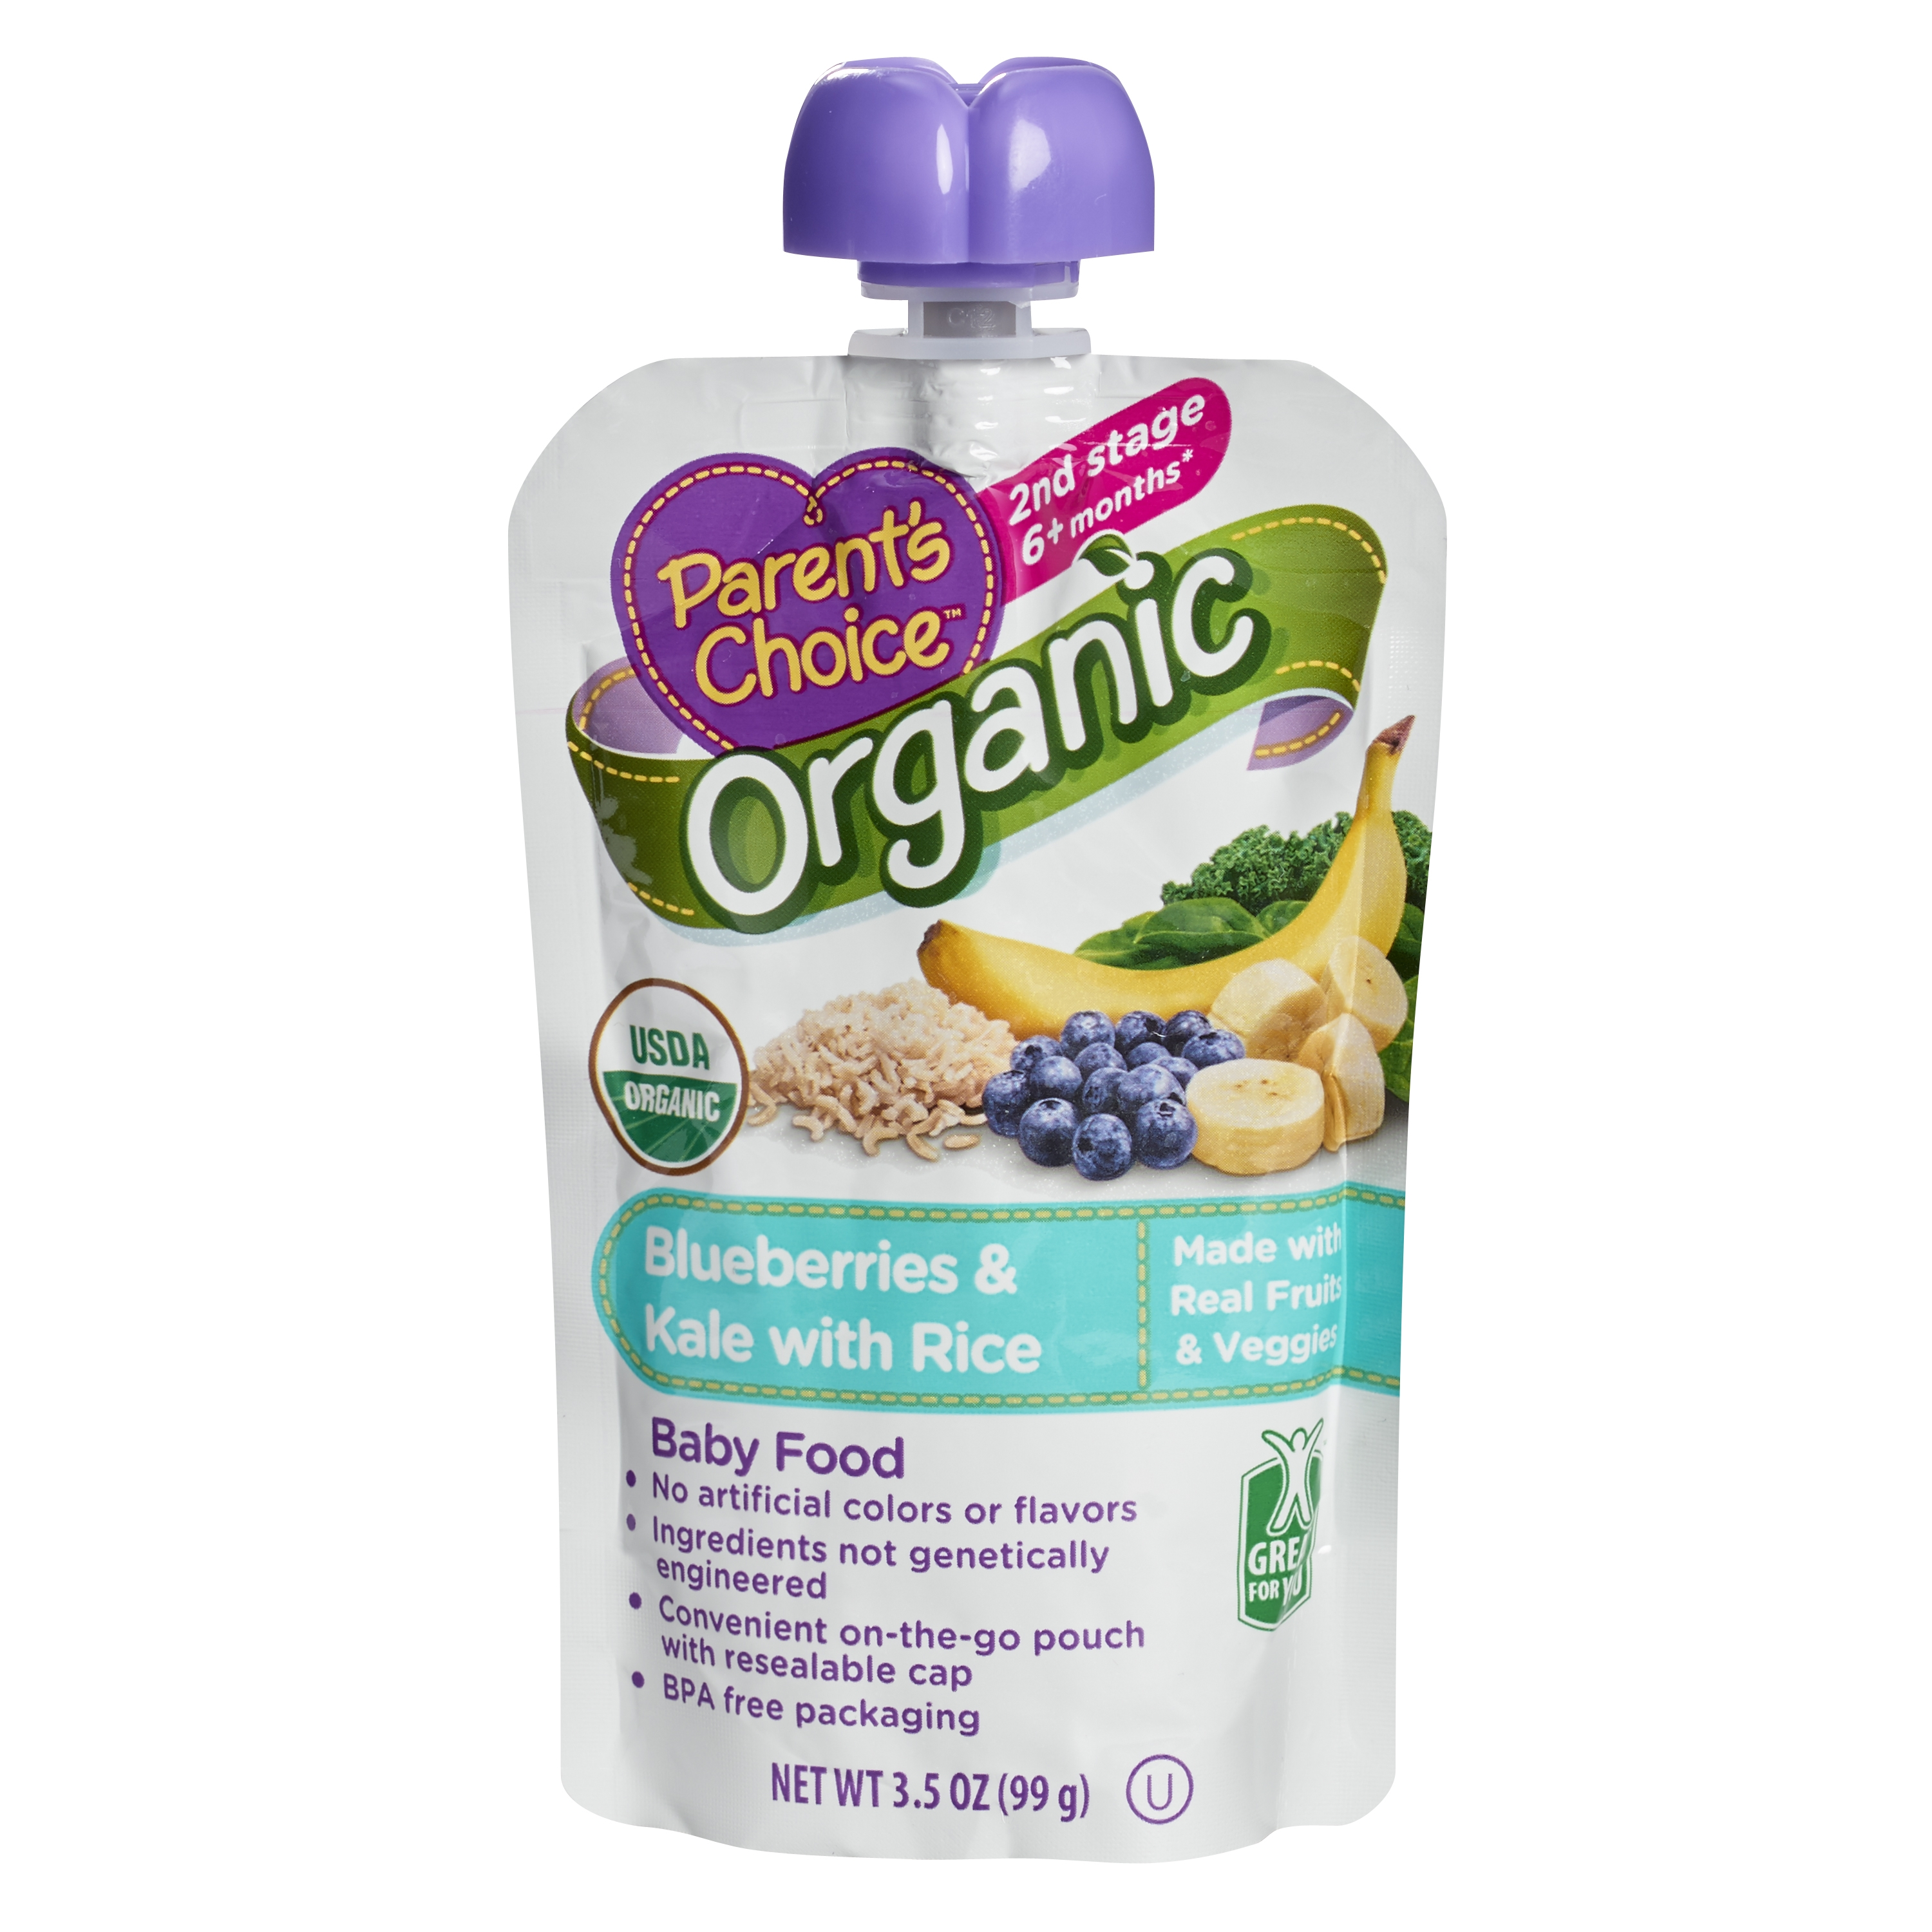 Parents Choice Org Blueberries Kale With Rice Baby Food